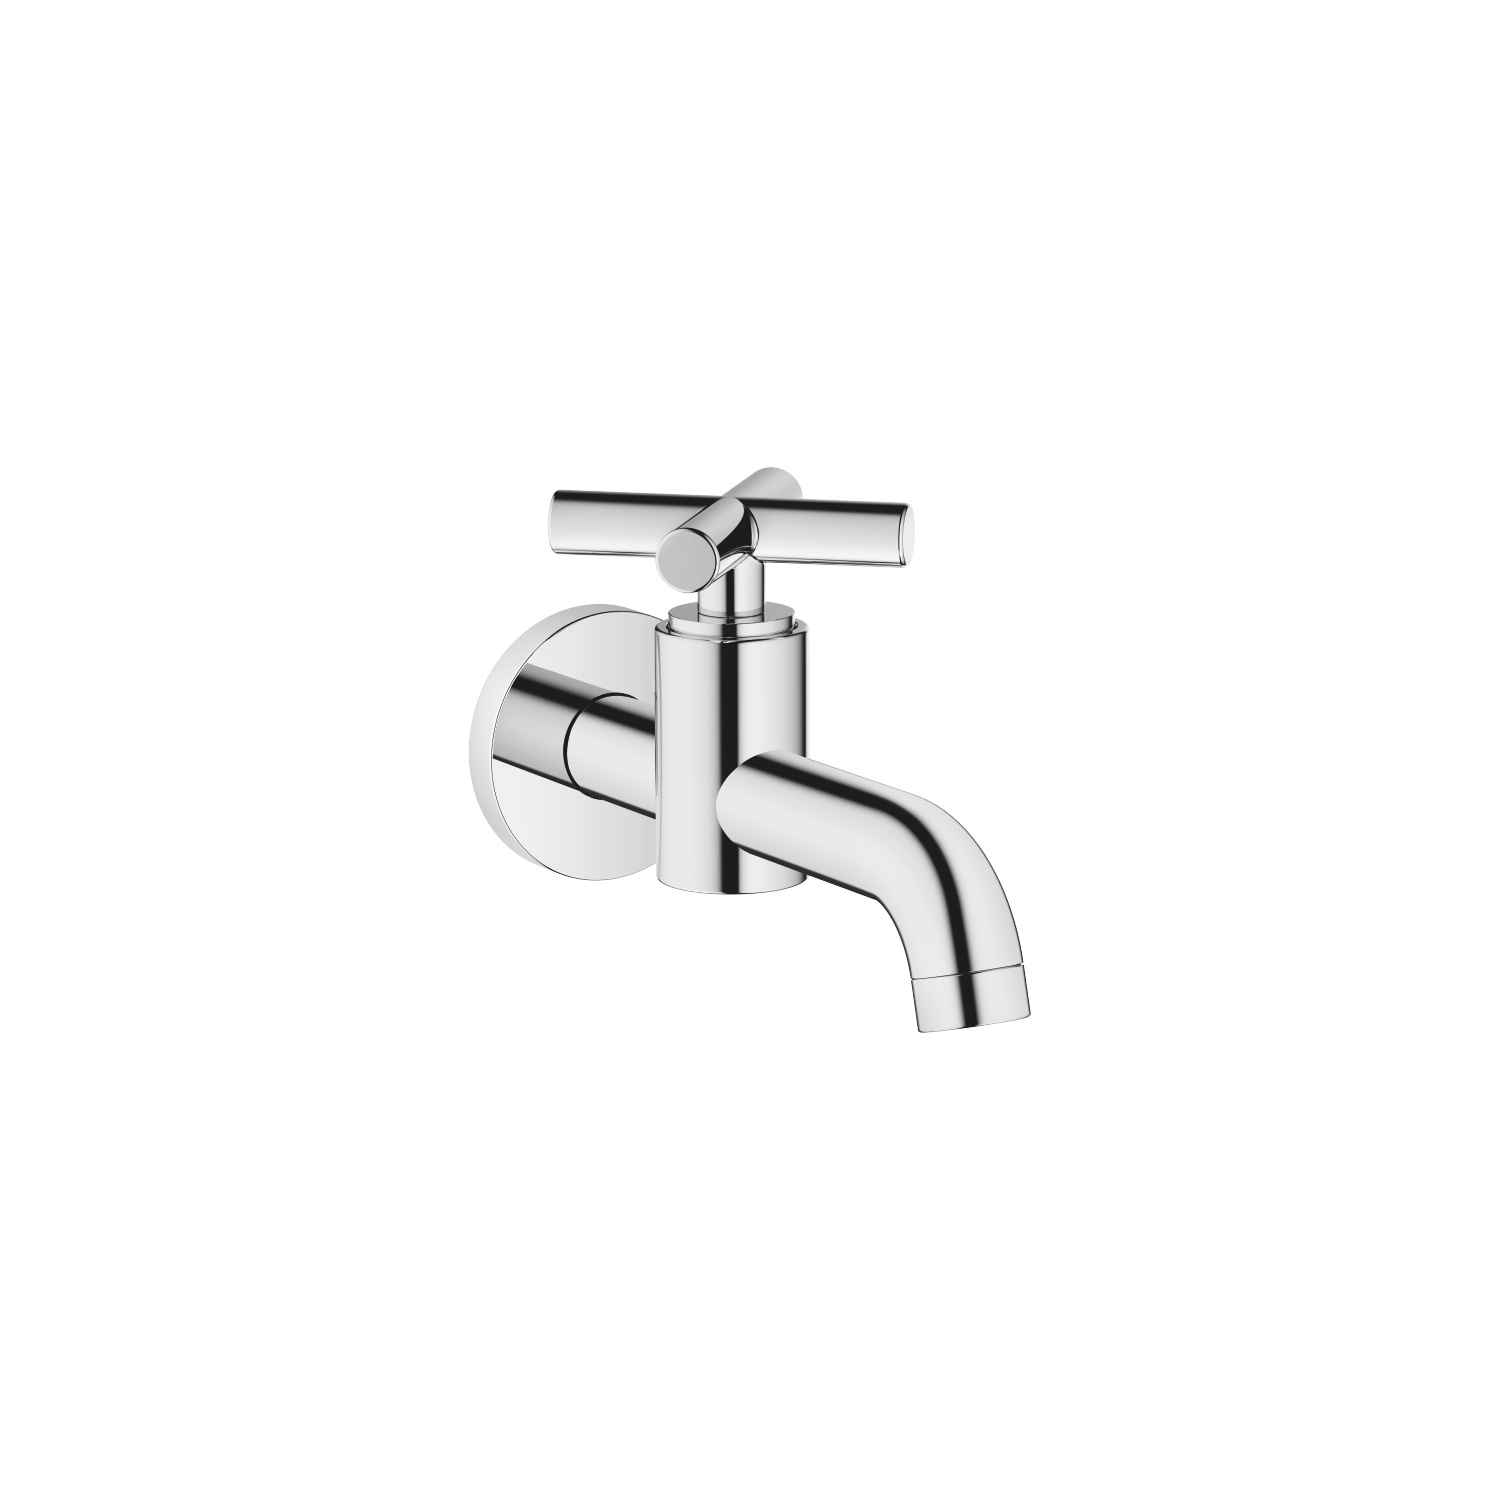 Wall-mounted valve cold water - polished chrome